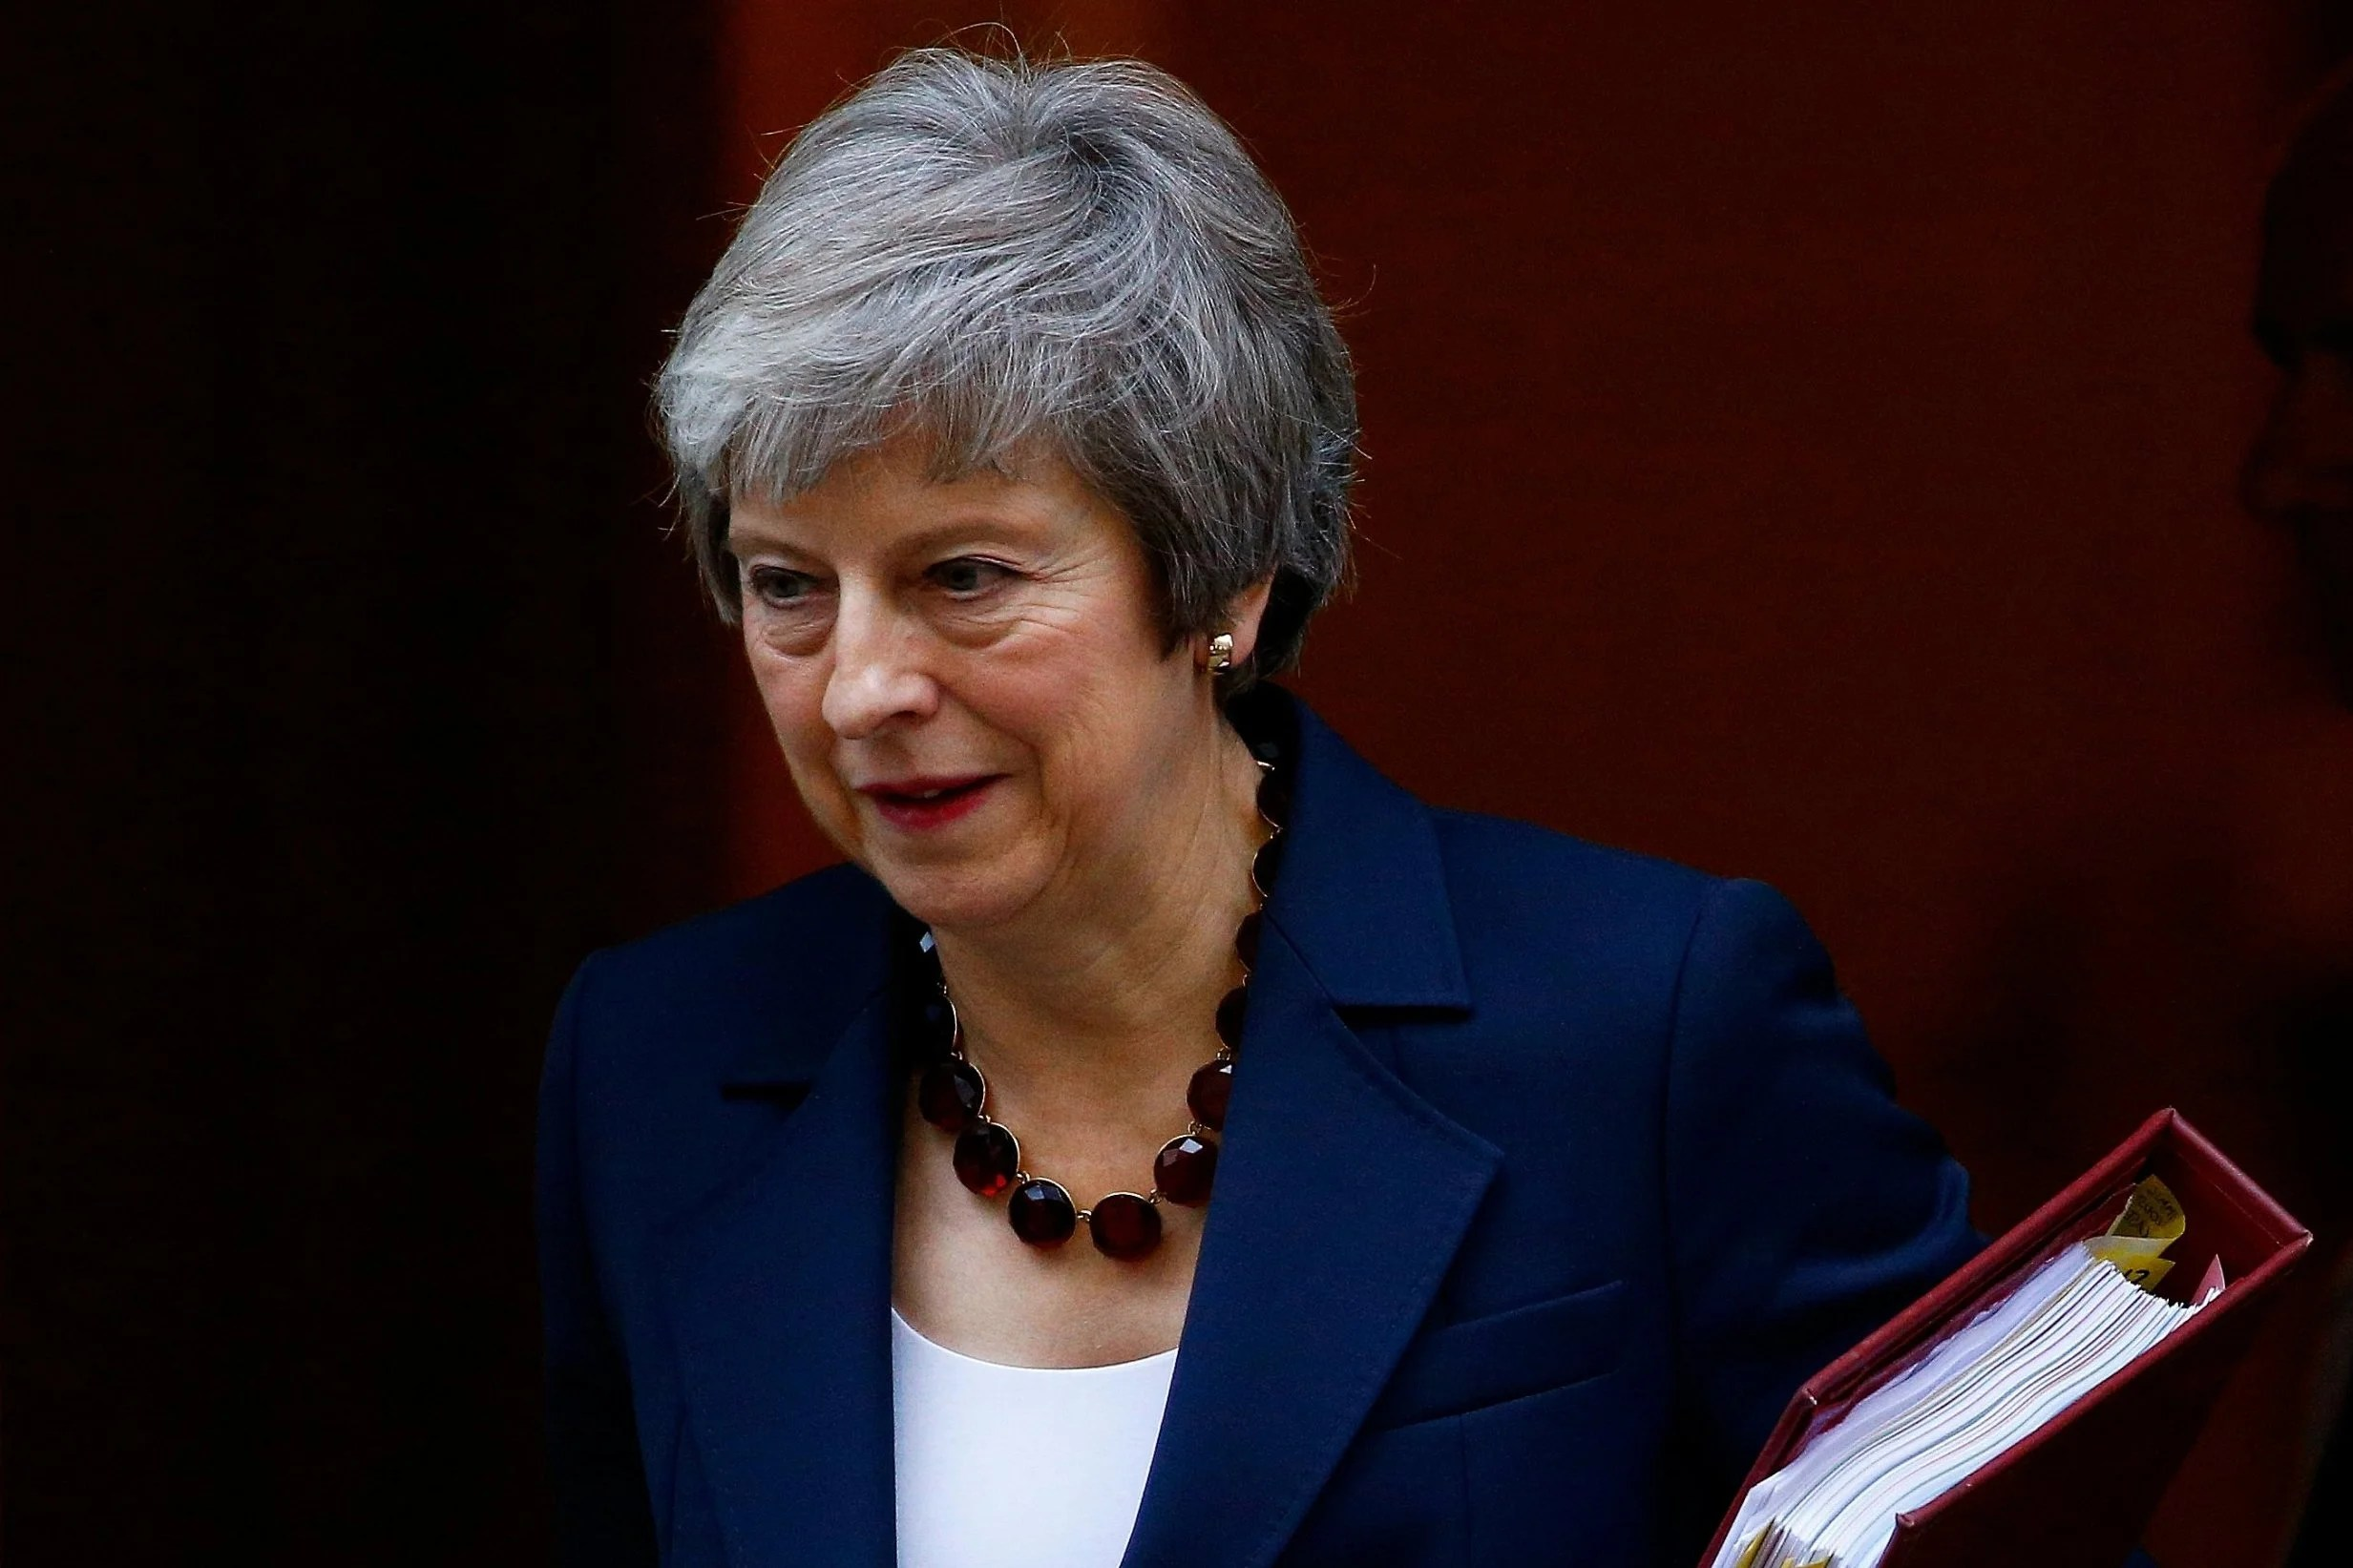 Theresa May faces ministers in marathon Brexit deal